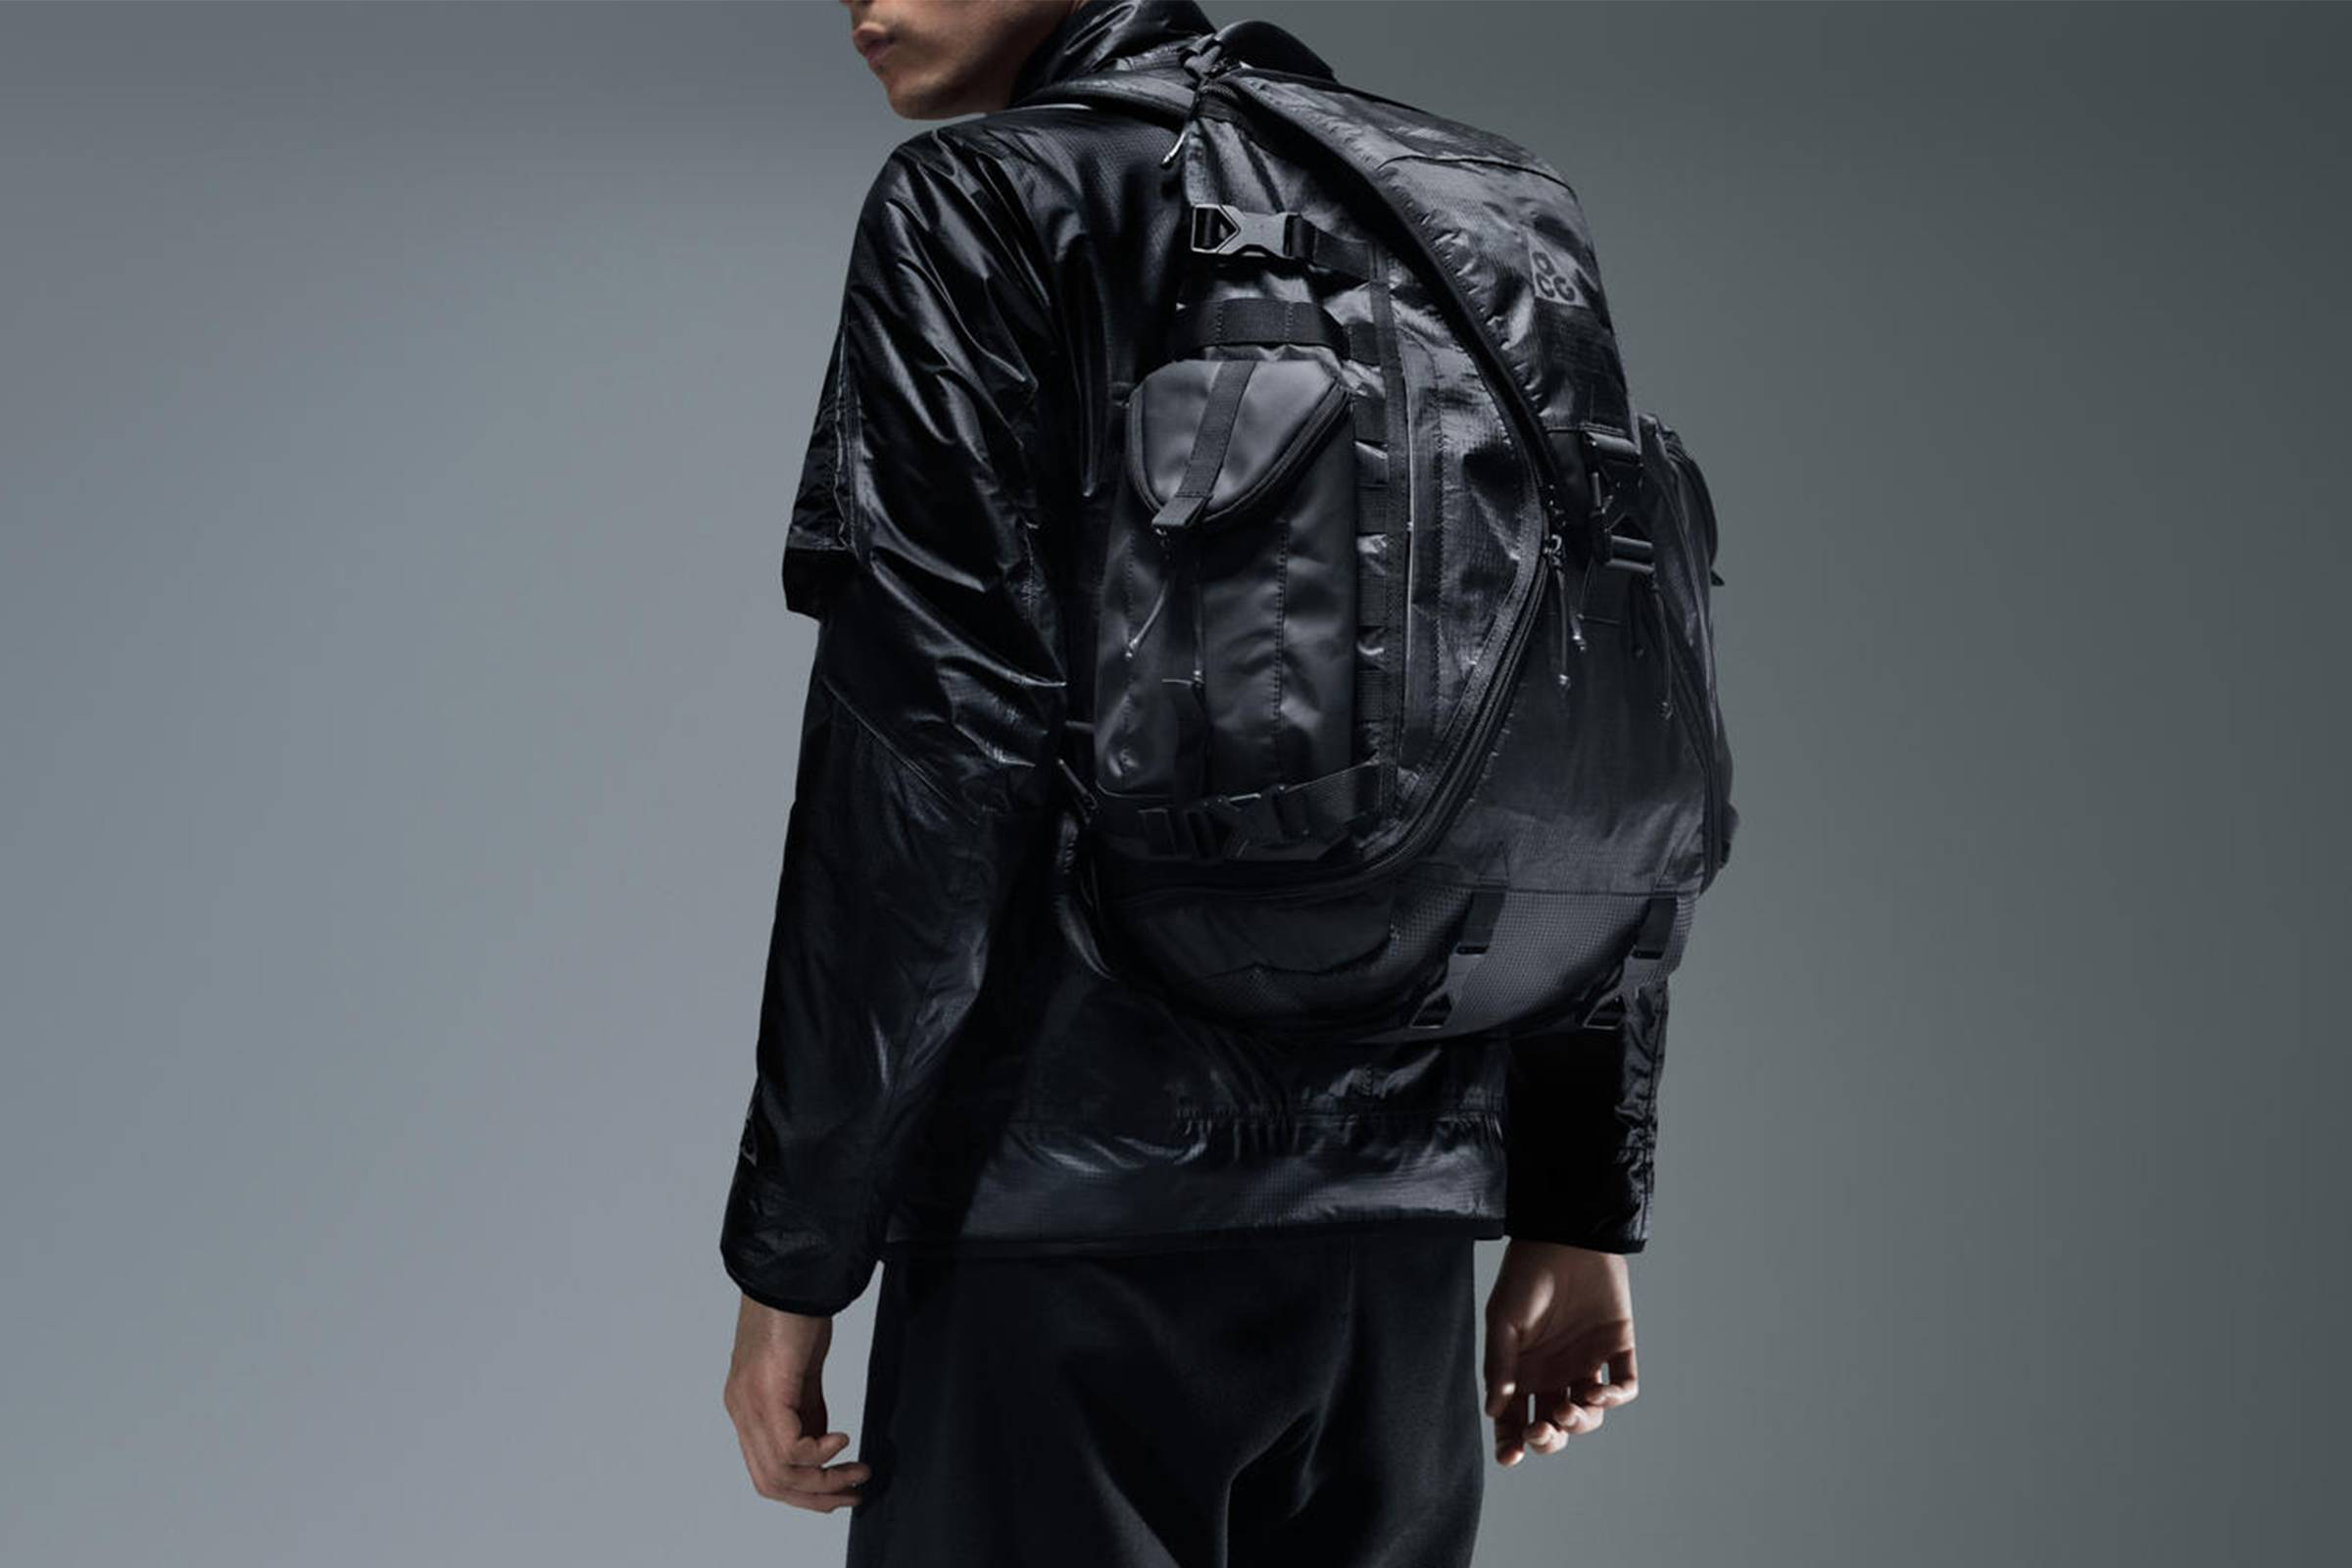 2cb9a9090731 The Corruption of Techwear  Fashion Design